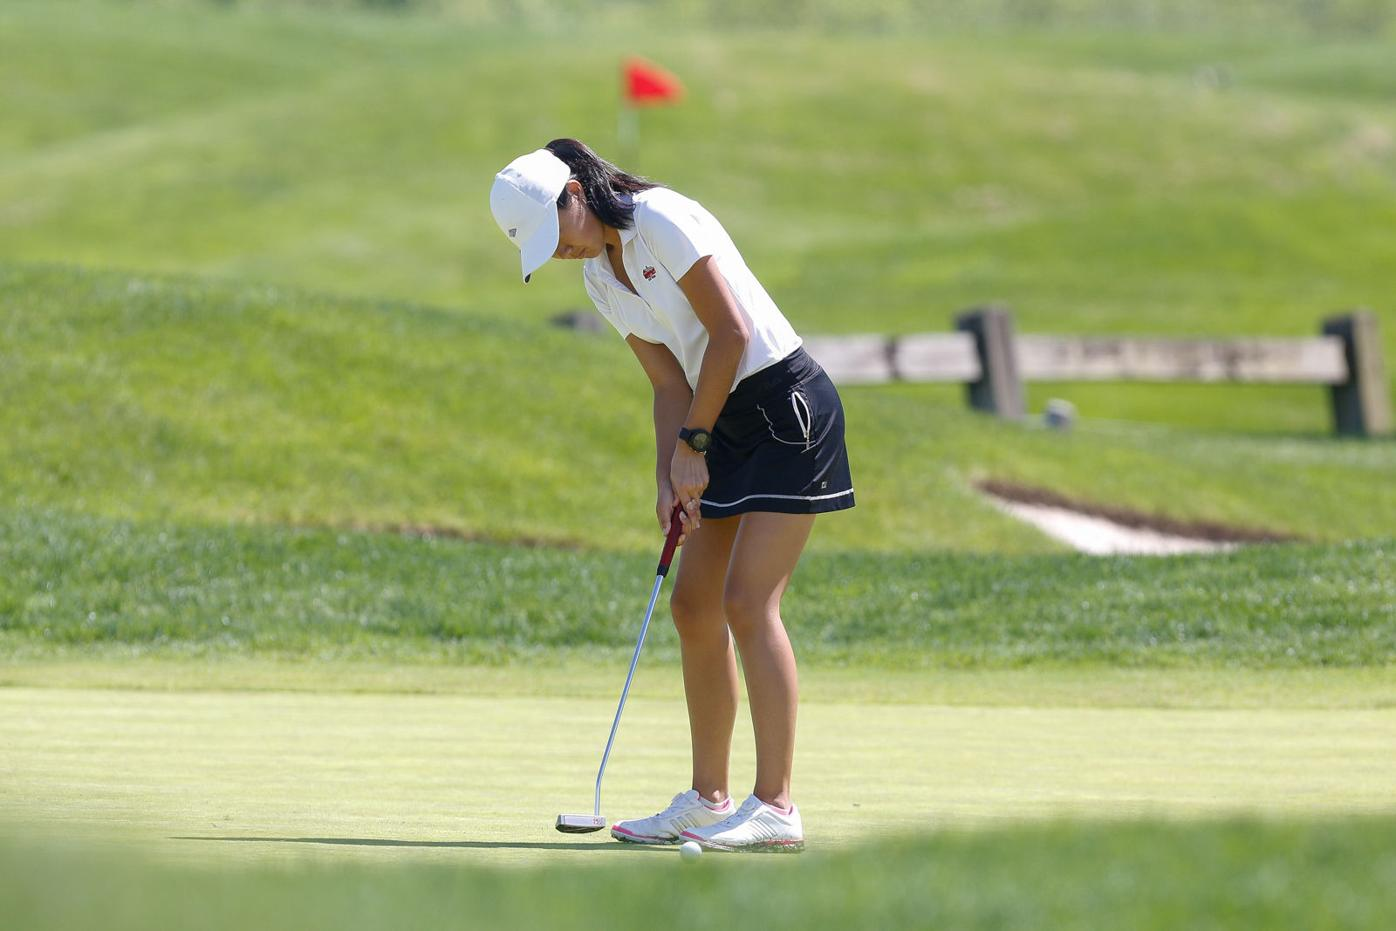 Lee, Chiu help section win girls golf state title Lee